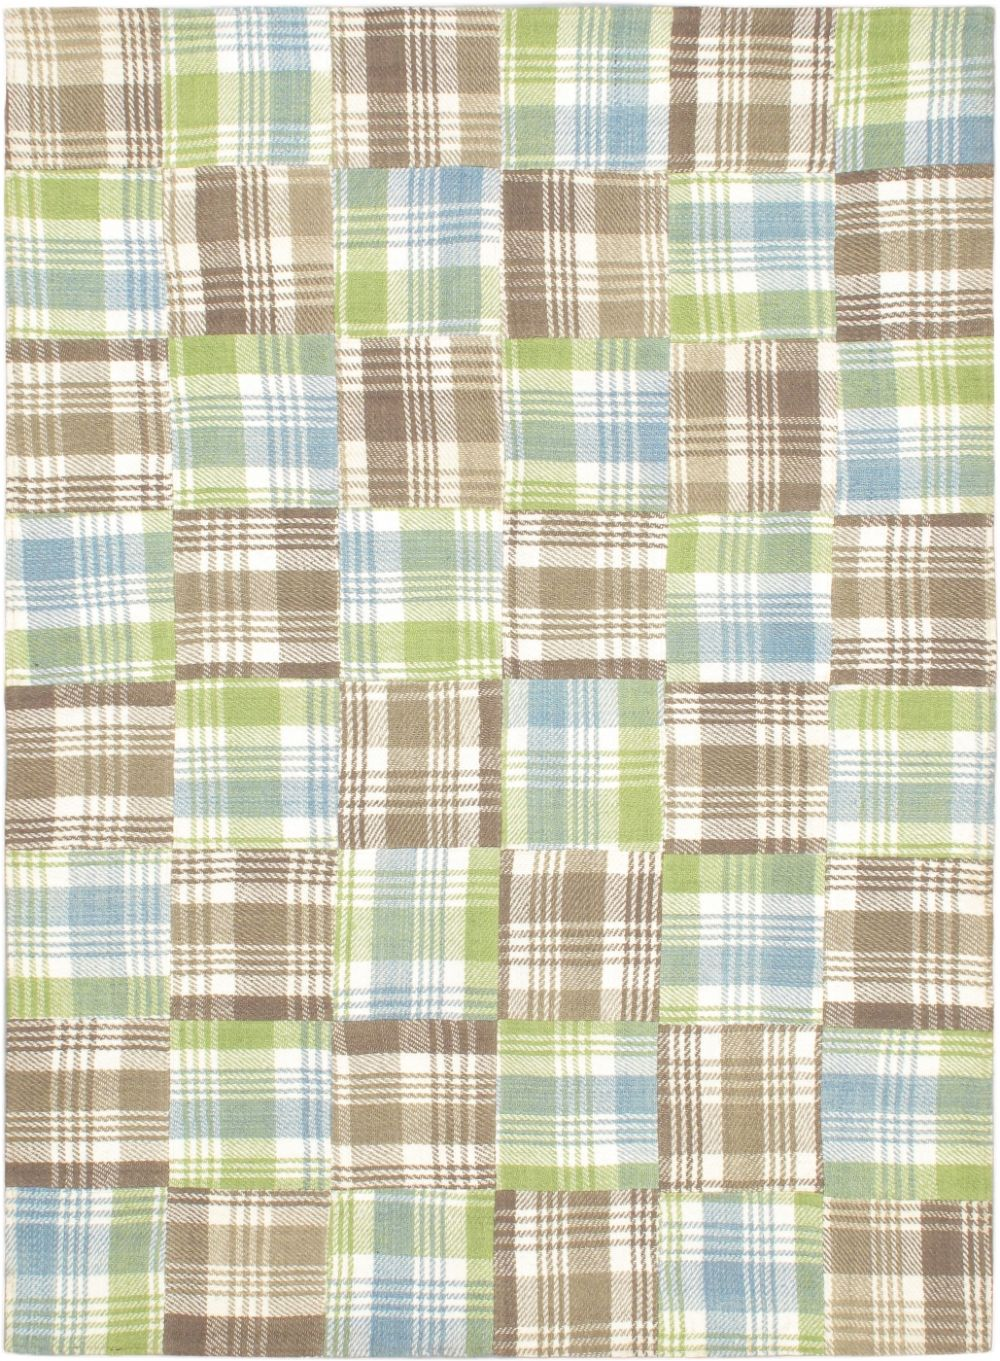 ecarpet gallery scottish patch transitional area rug collection